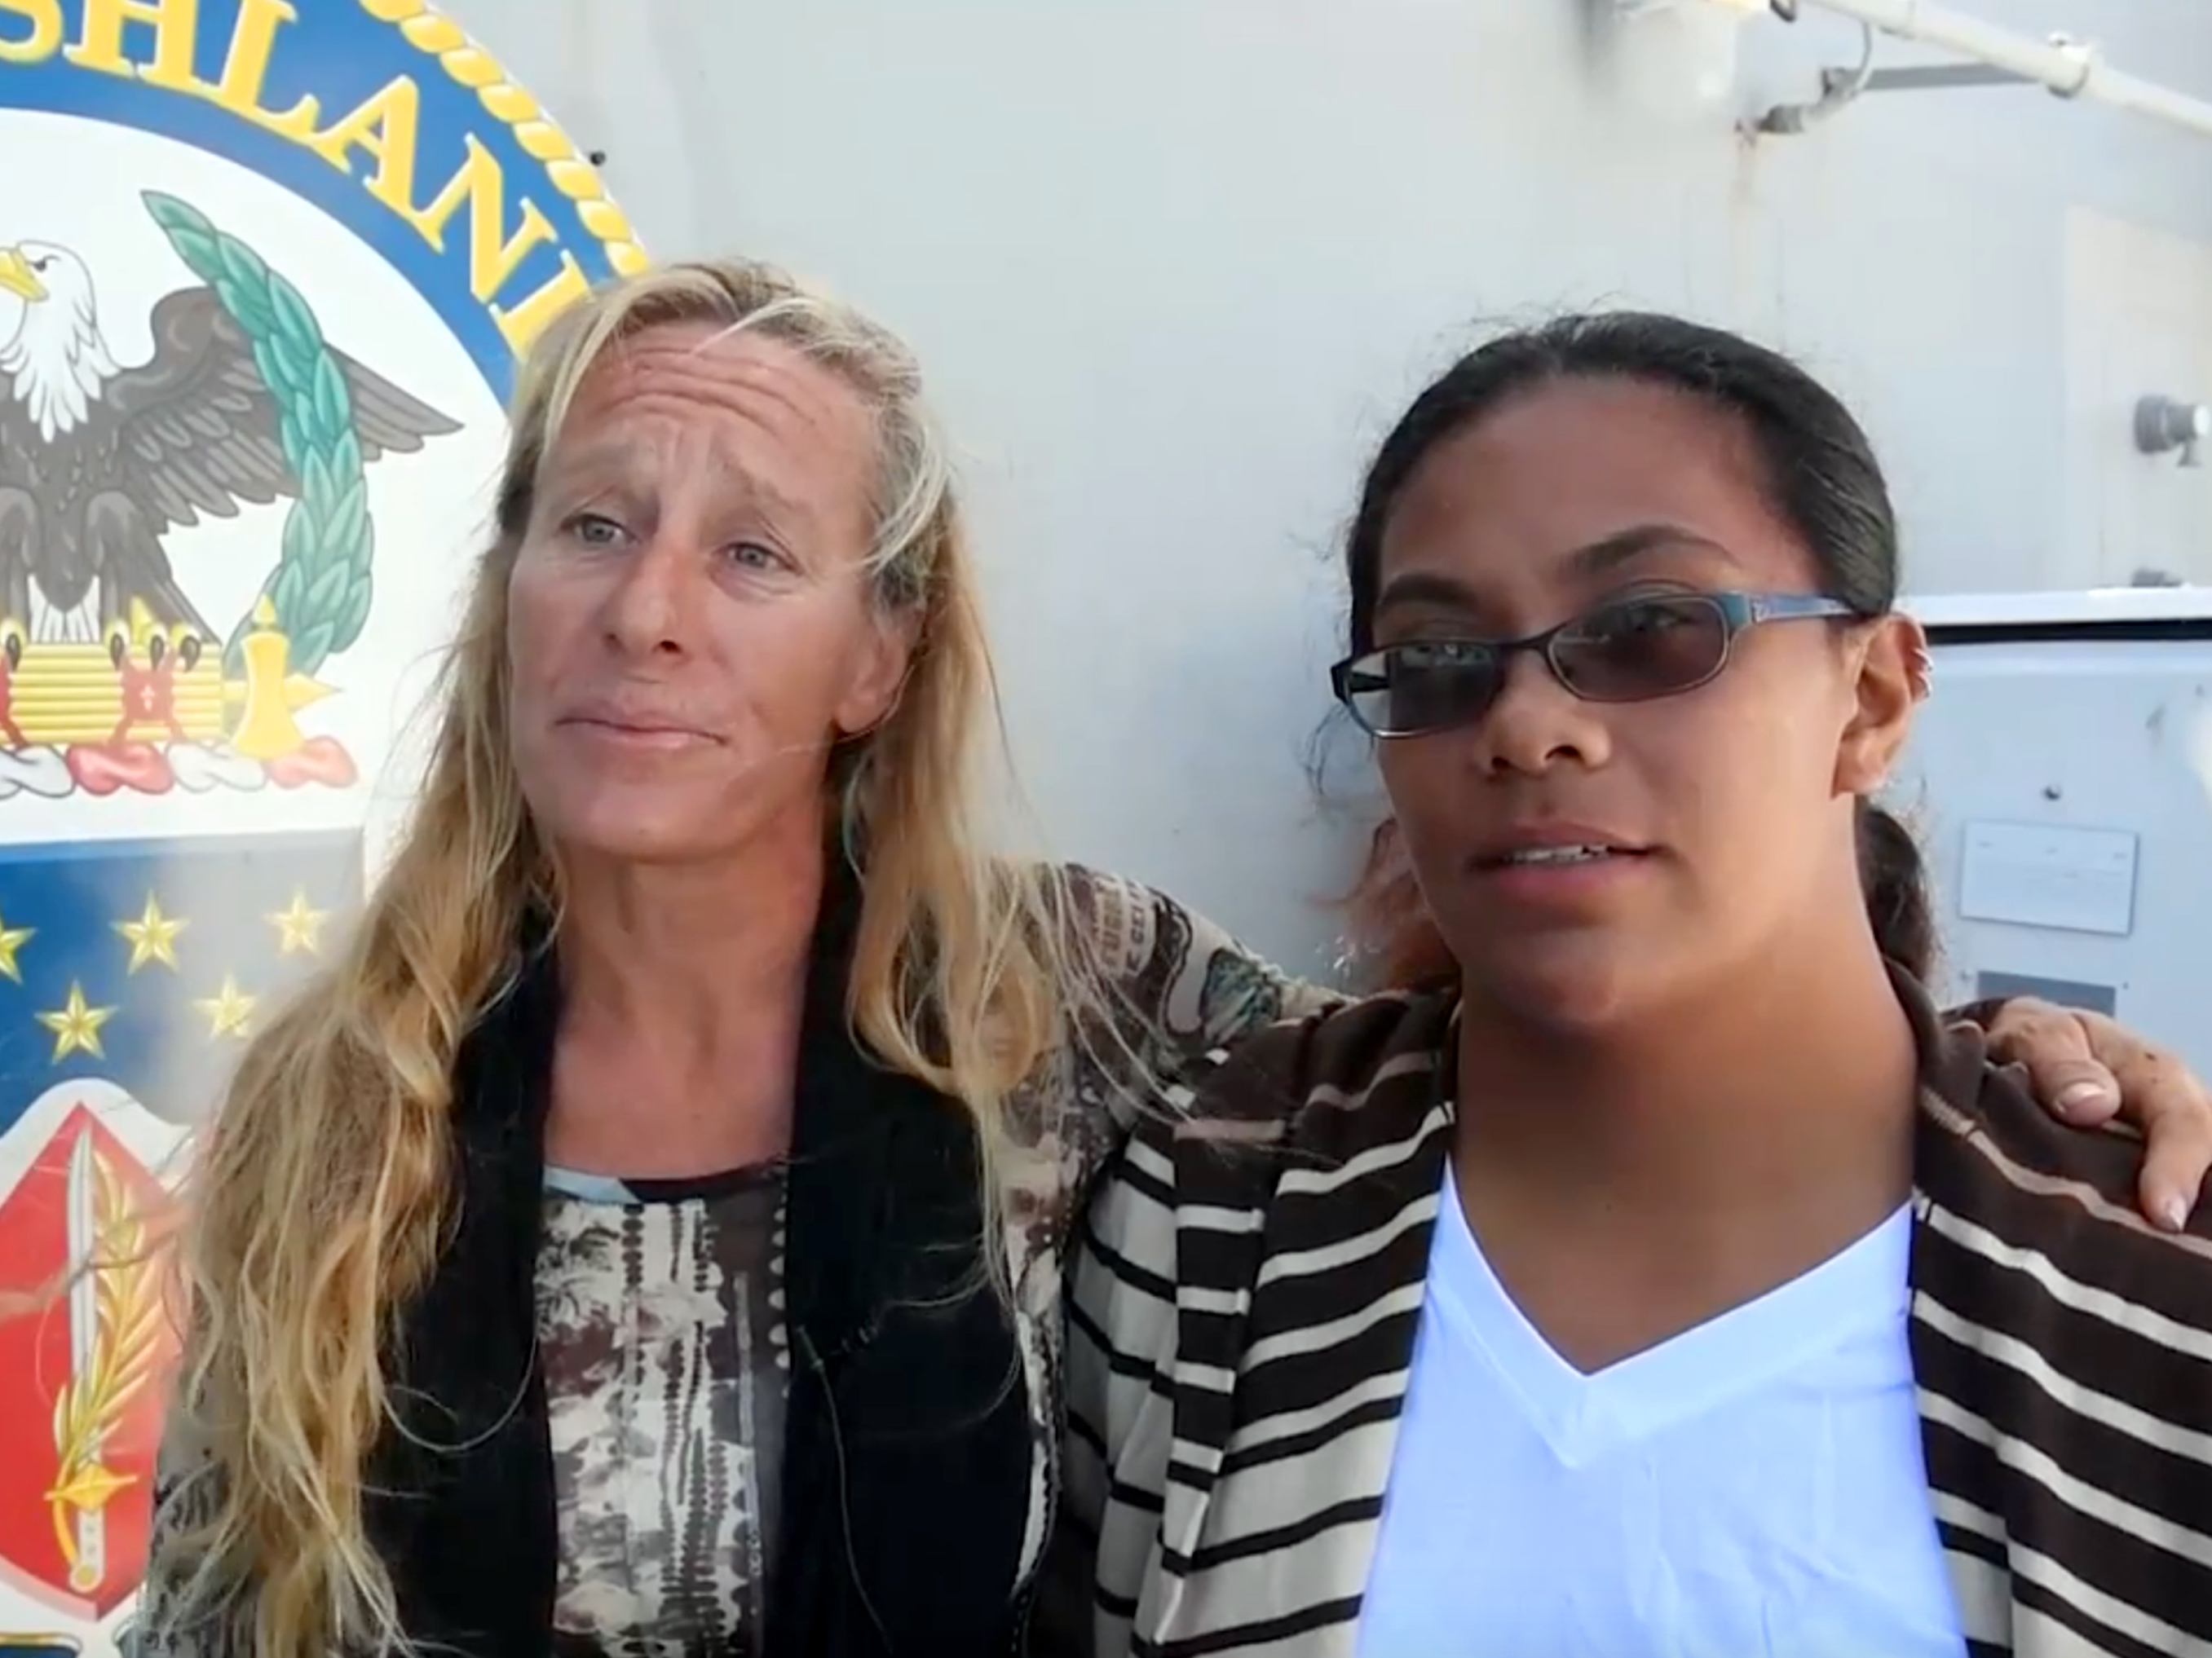 After Navy Rescue Of Sailors Adrift At Sea, The Story Gets Stranger